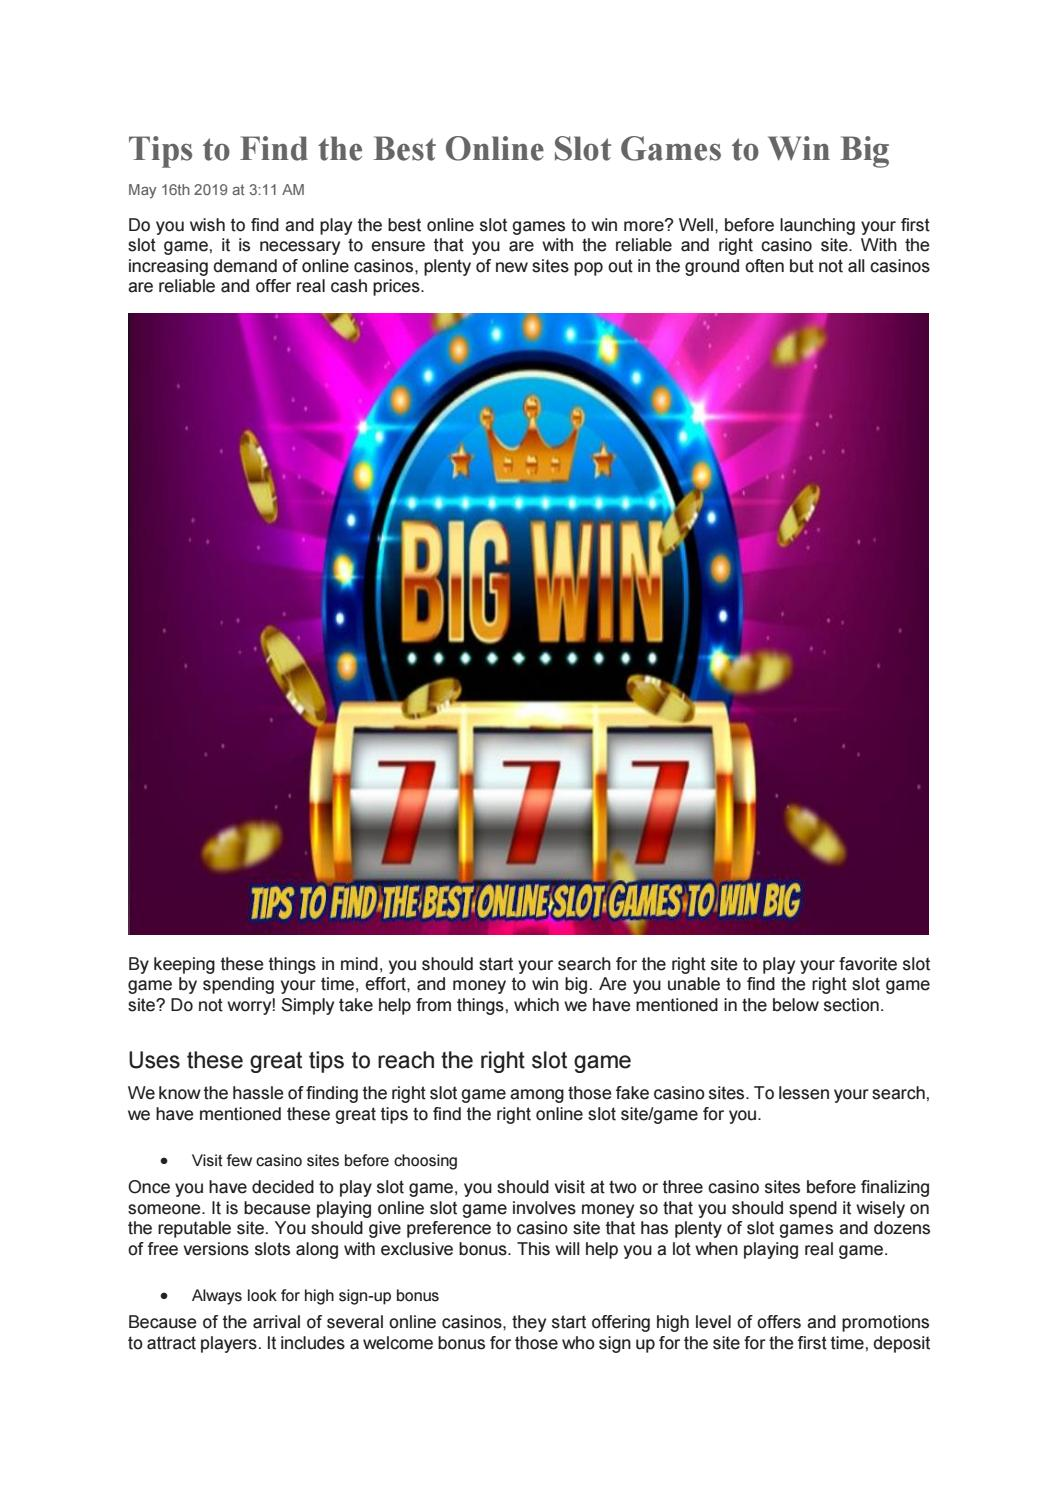 Tips To Find The Best Online Slot Games To Win Big By Playleon Issuu